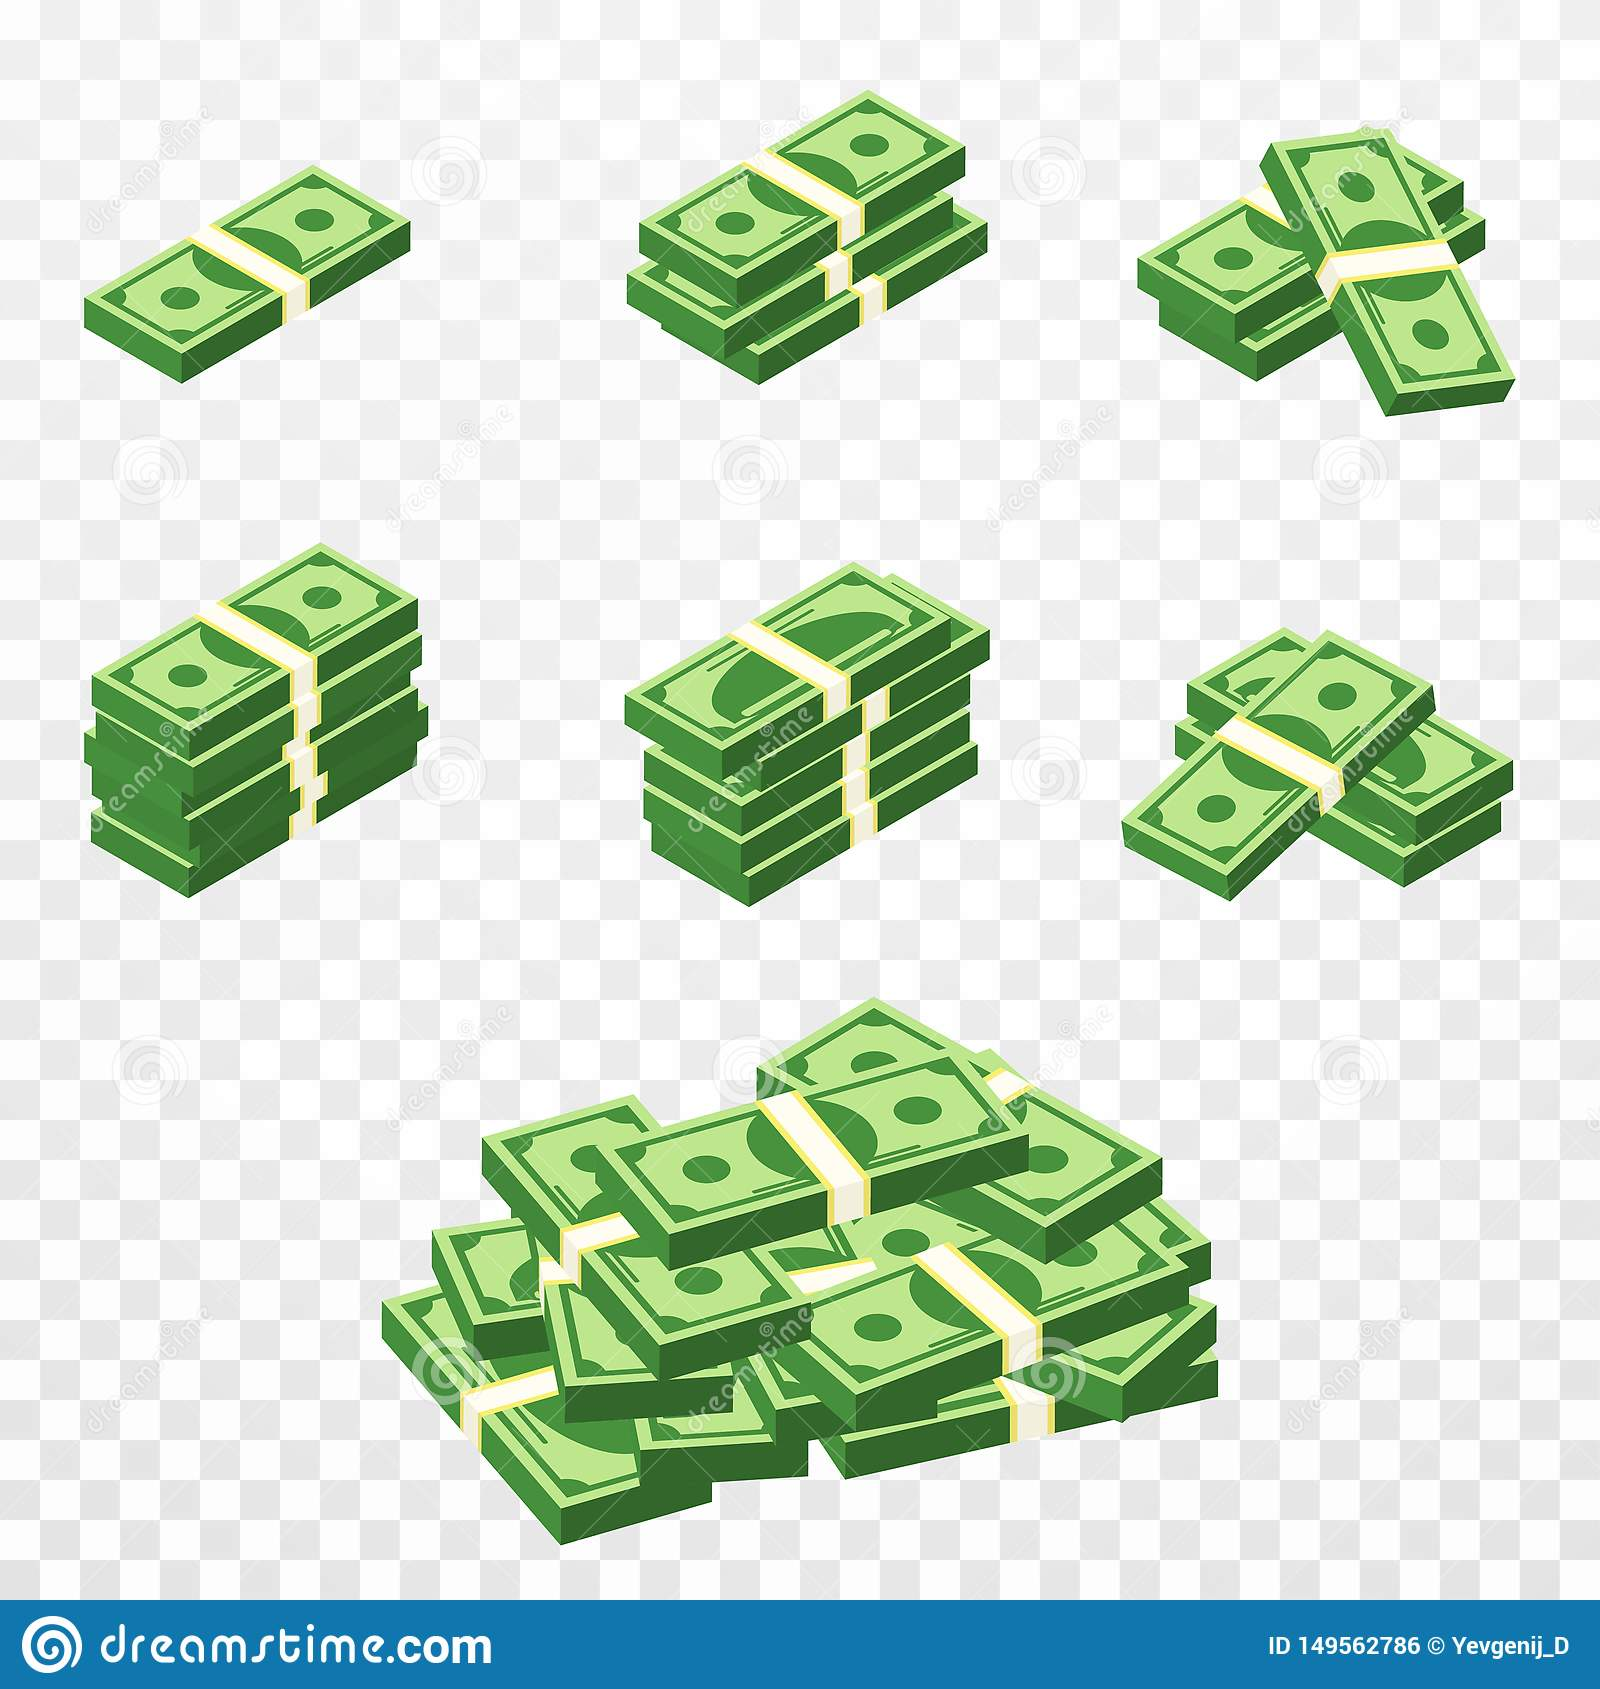 Bunches of money in cartoon 3d style. Set of different packs of dollar bills. Isometric green dollars